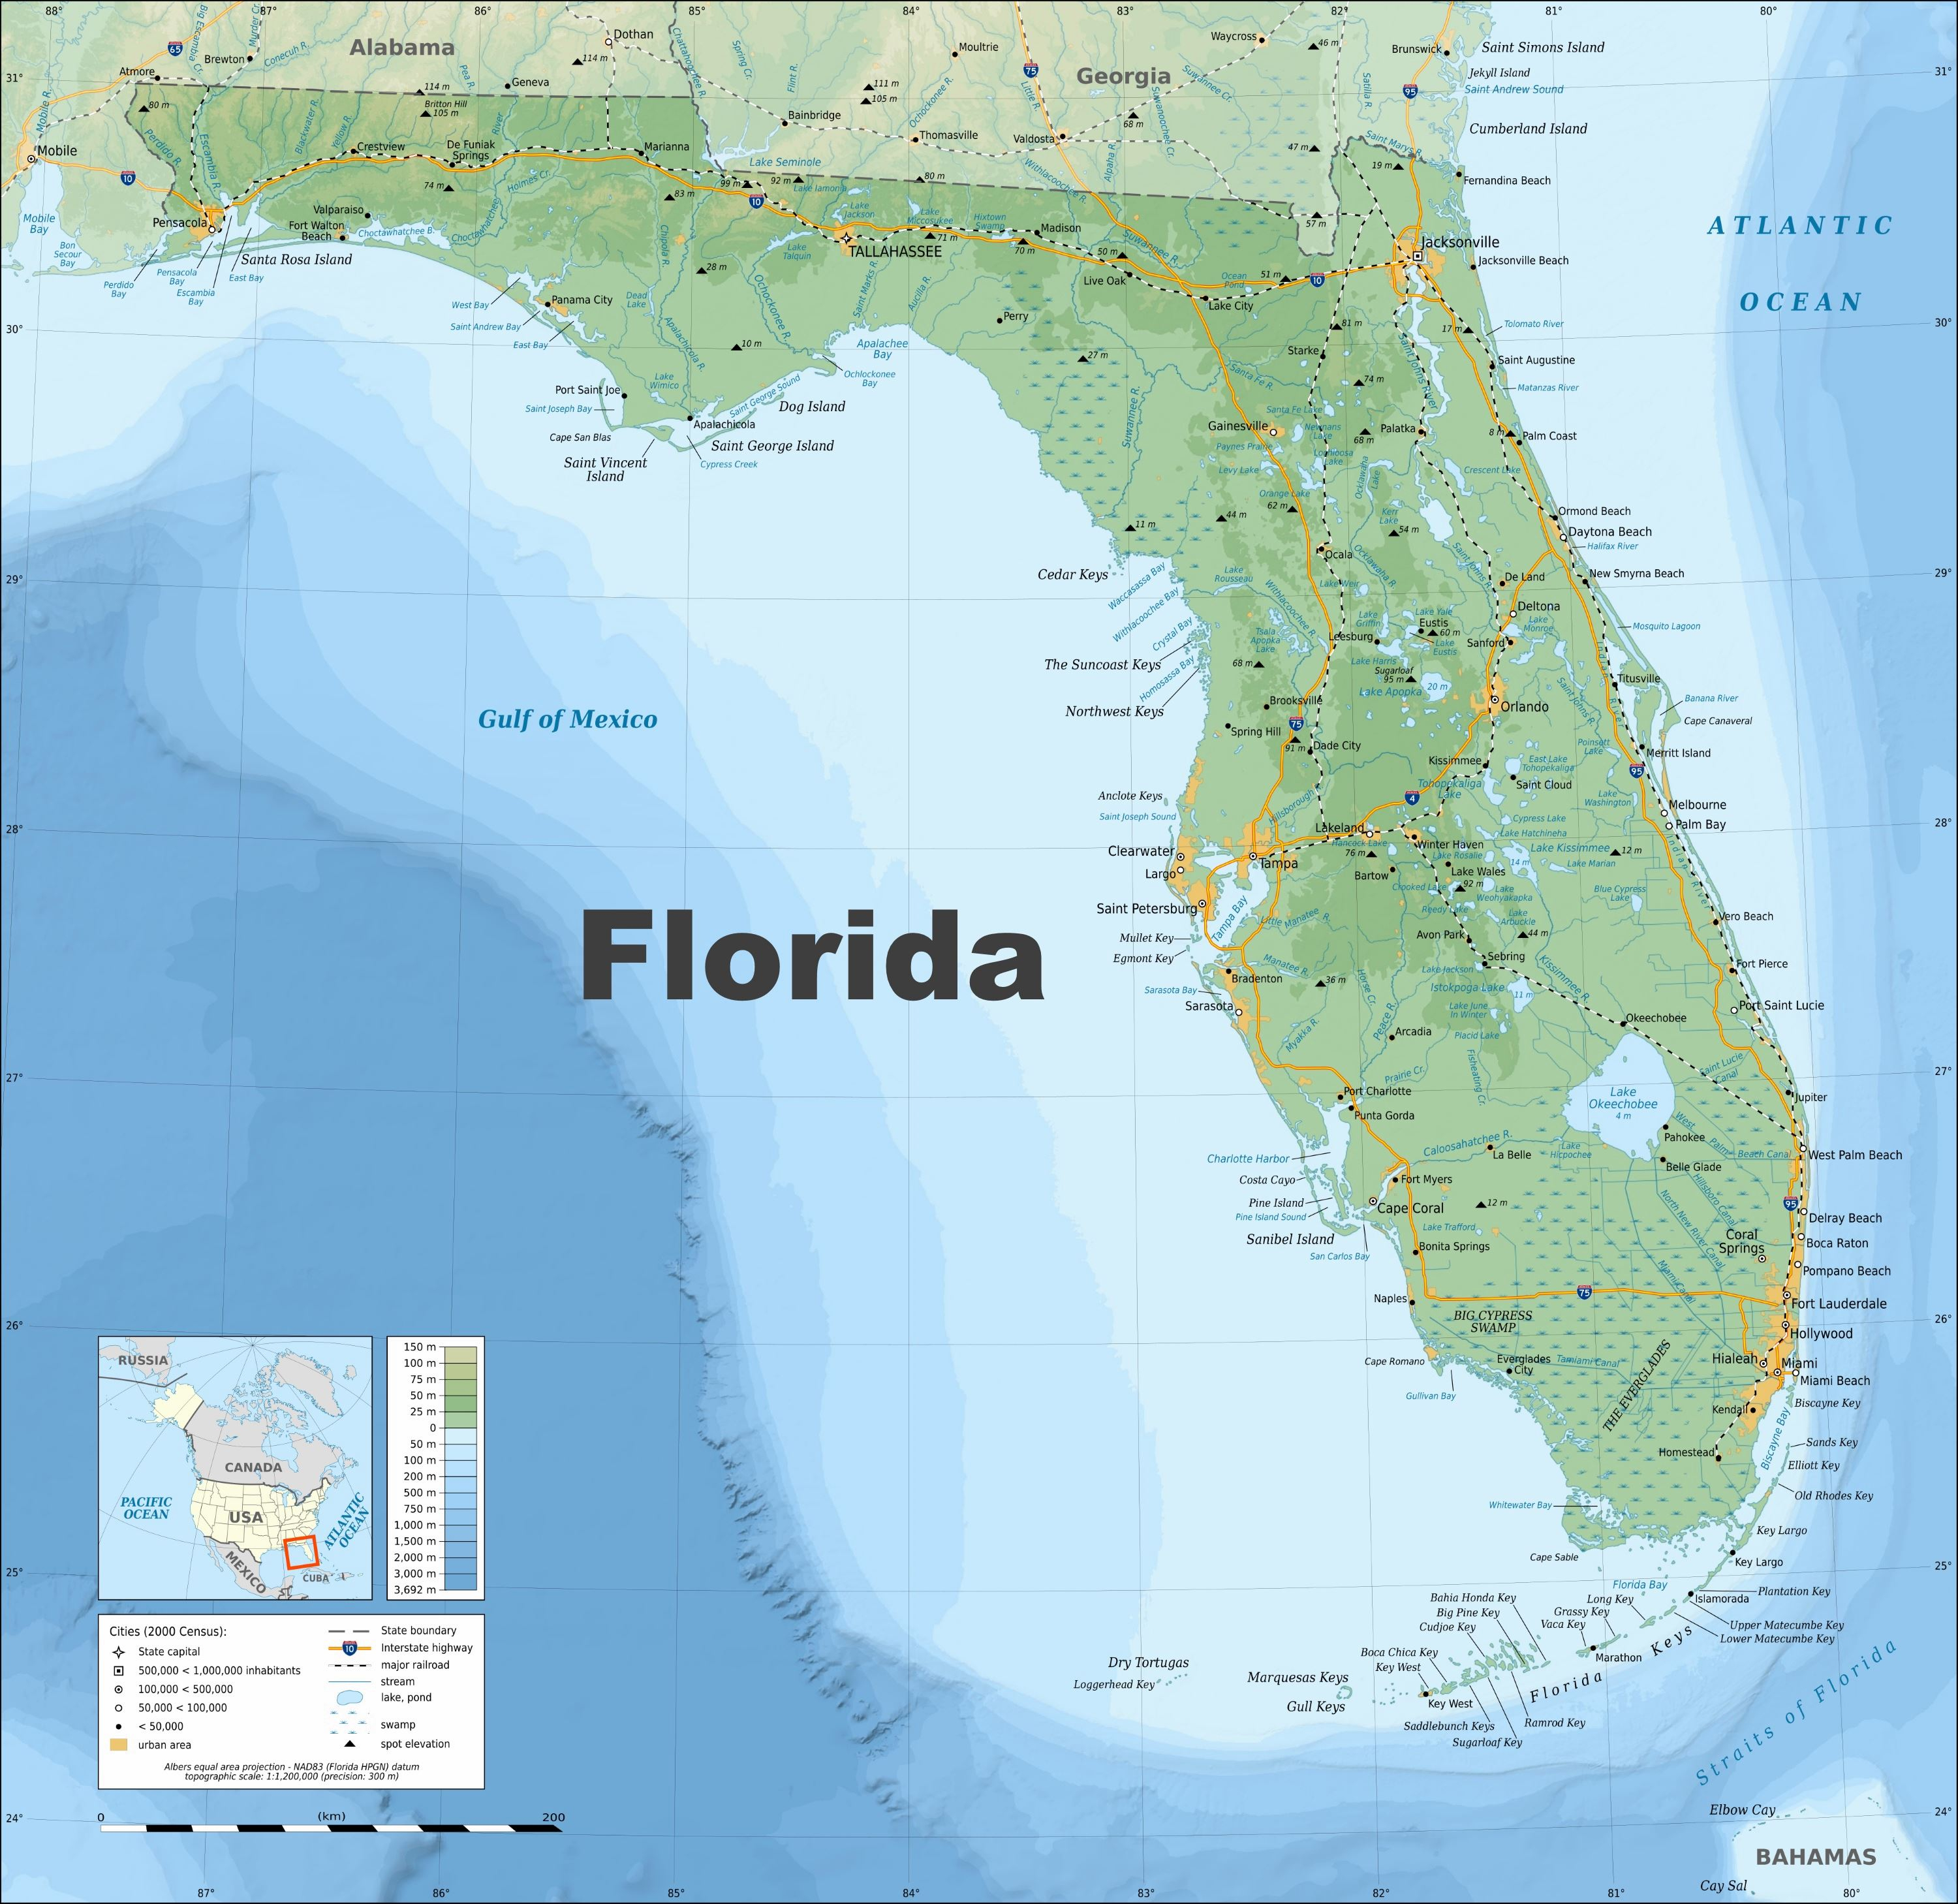 Large Florida Maps For Free Download And Print | High-Resolution And - Google Maps Hollywood Florida